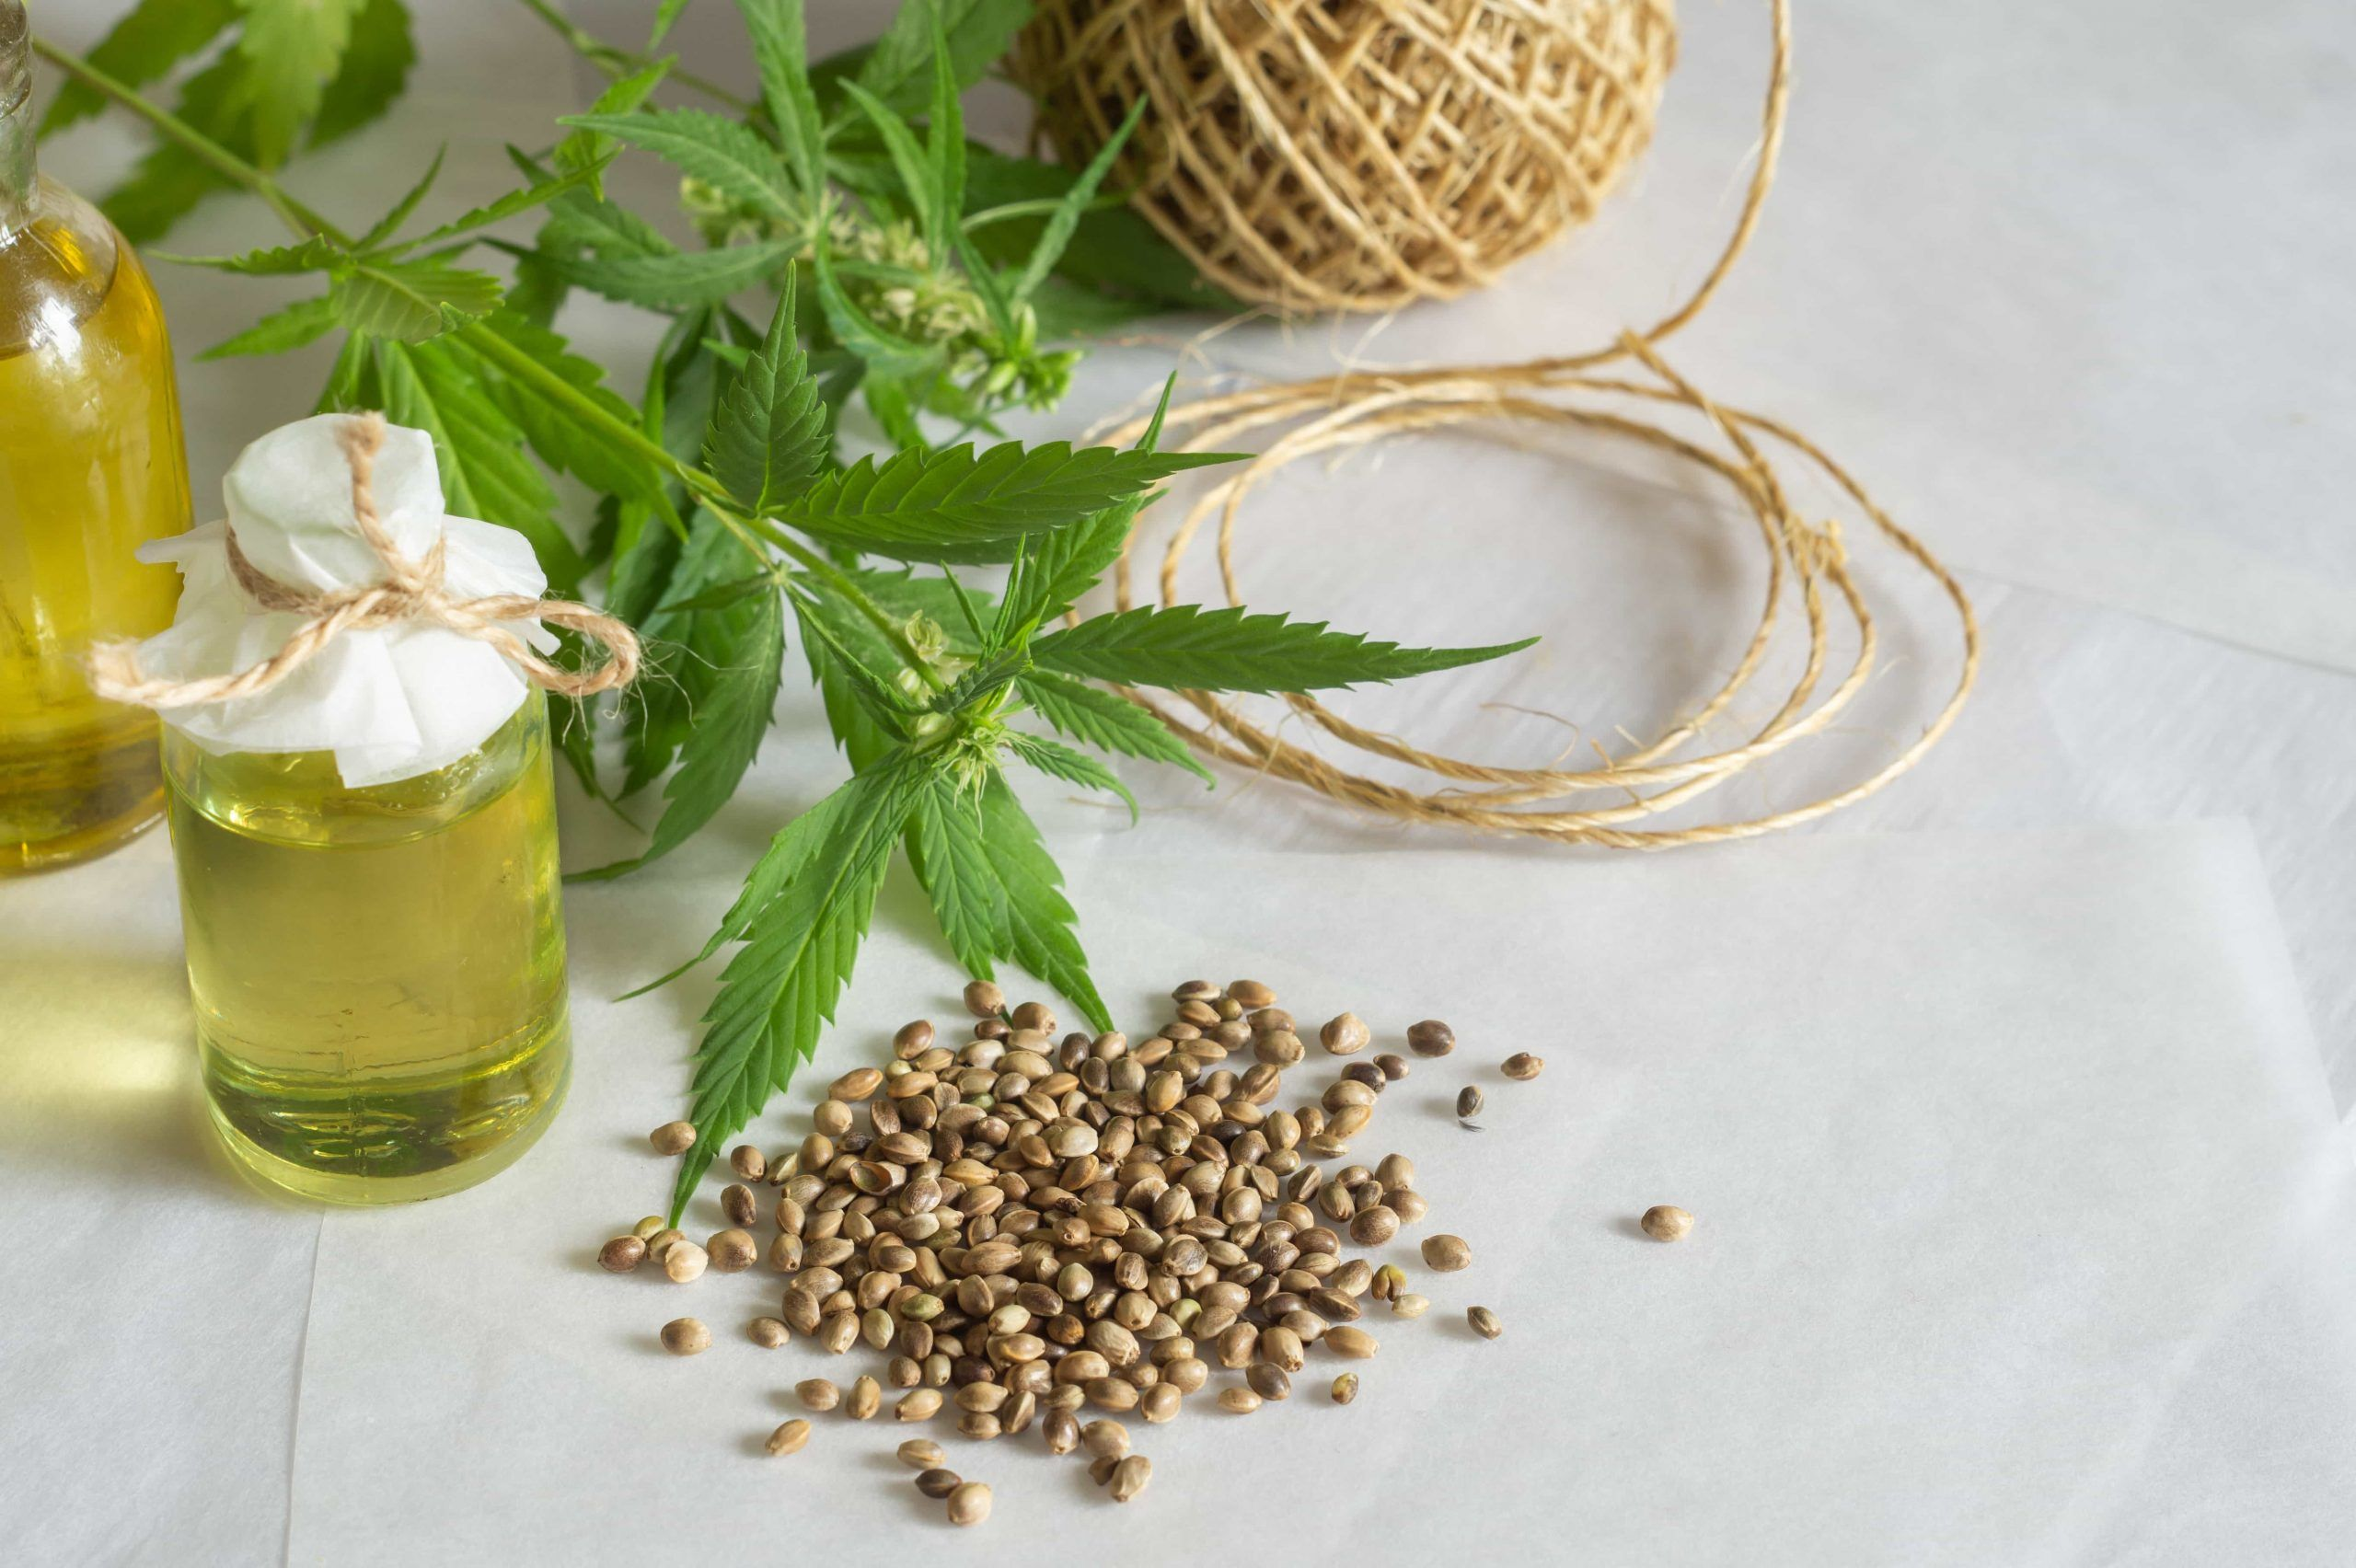 hemp seeds and hemp seed oil